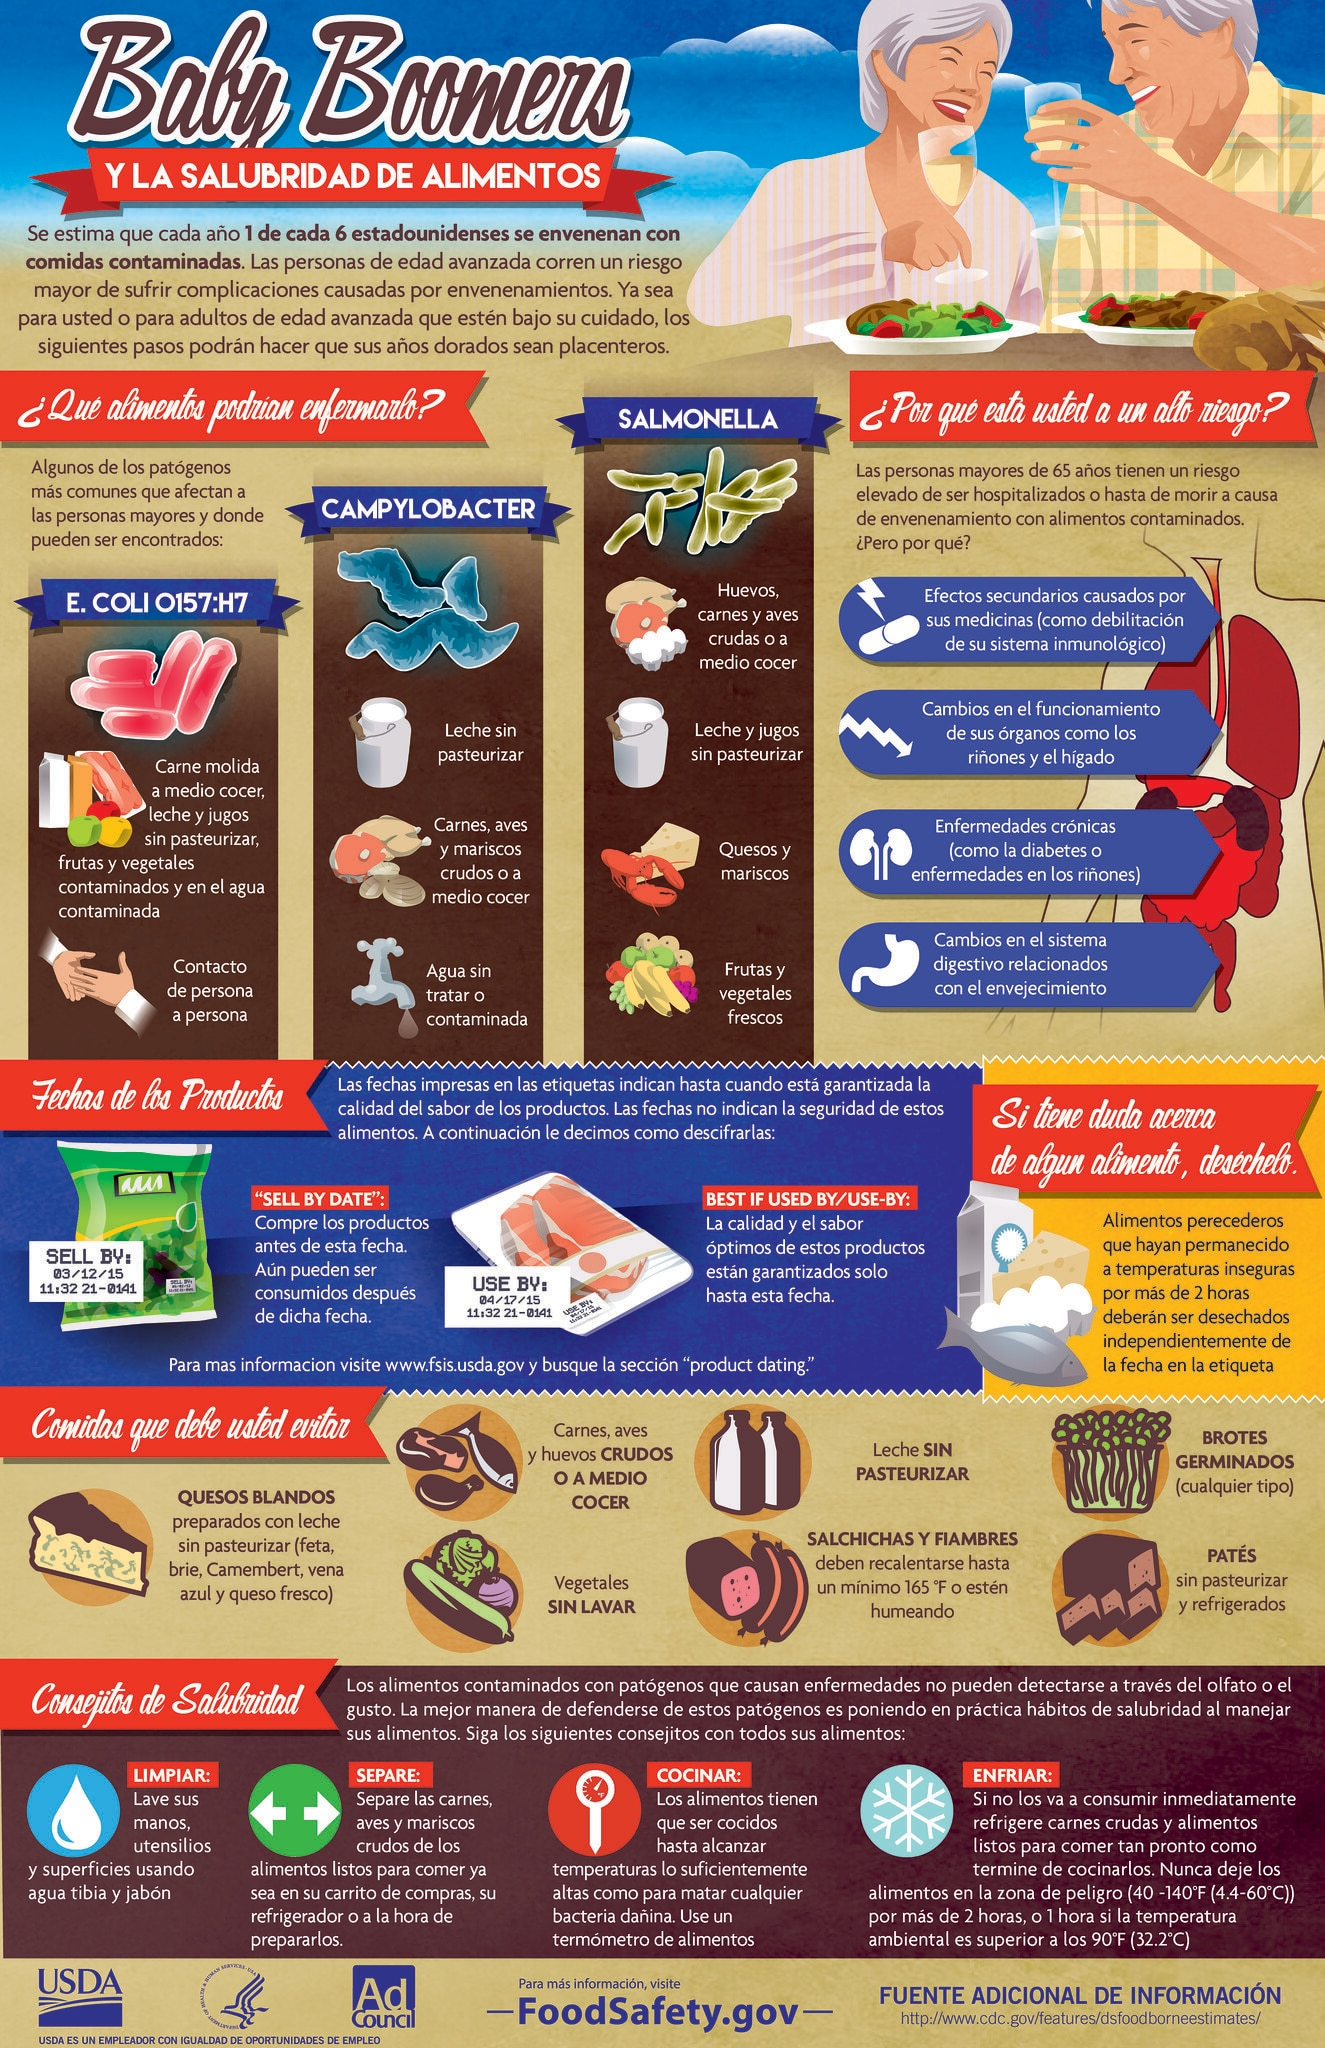 Infographic from FoodSafety.gov with food safety steps for baby boomers and older adults at risk from foodborne illness.